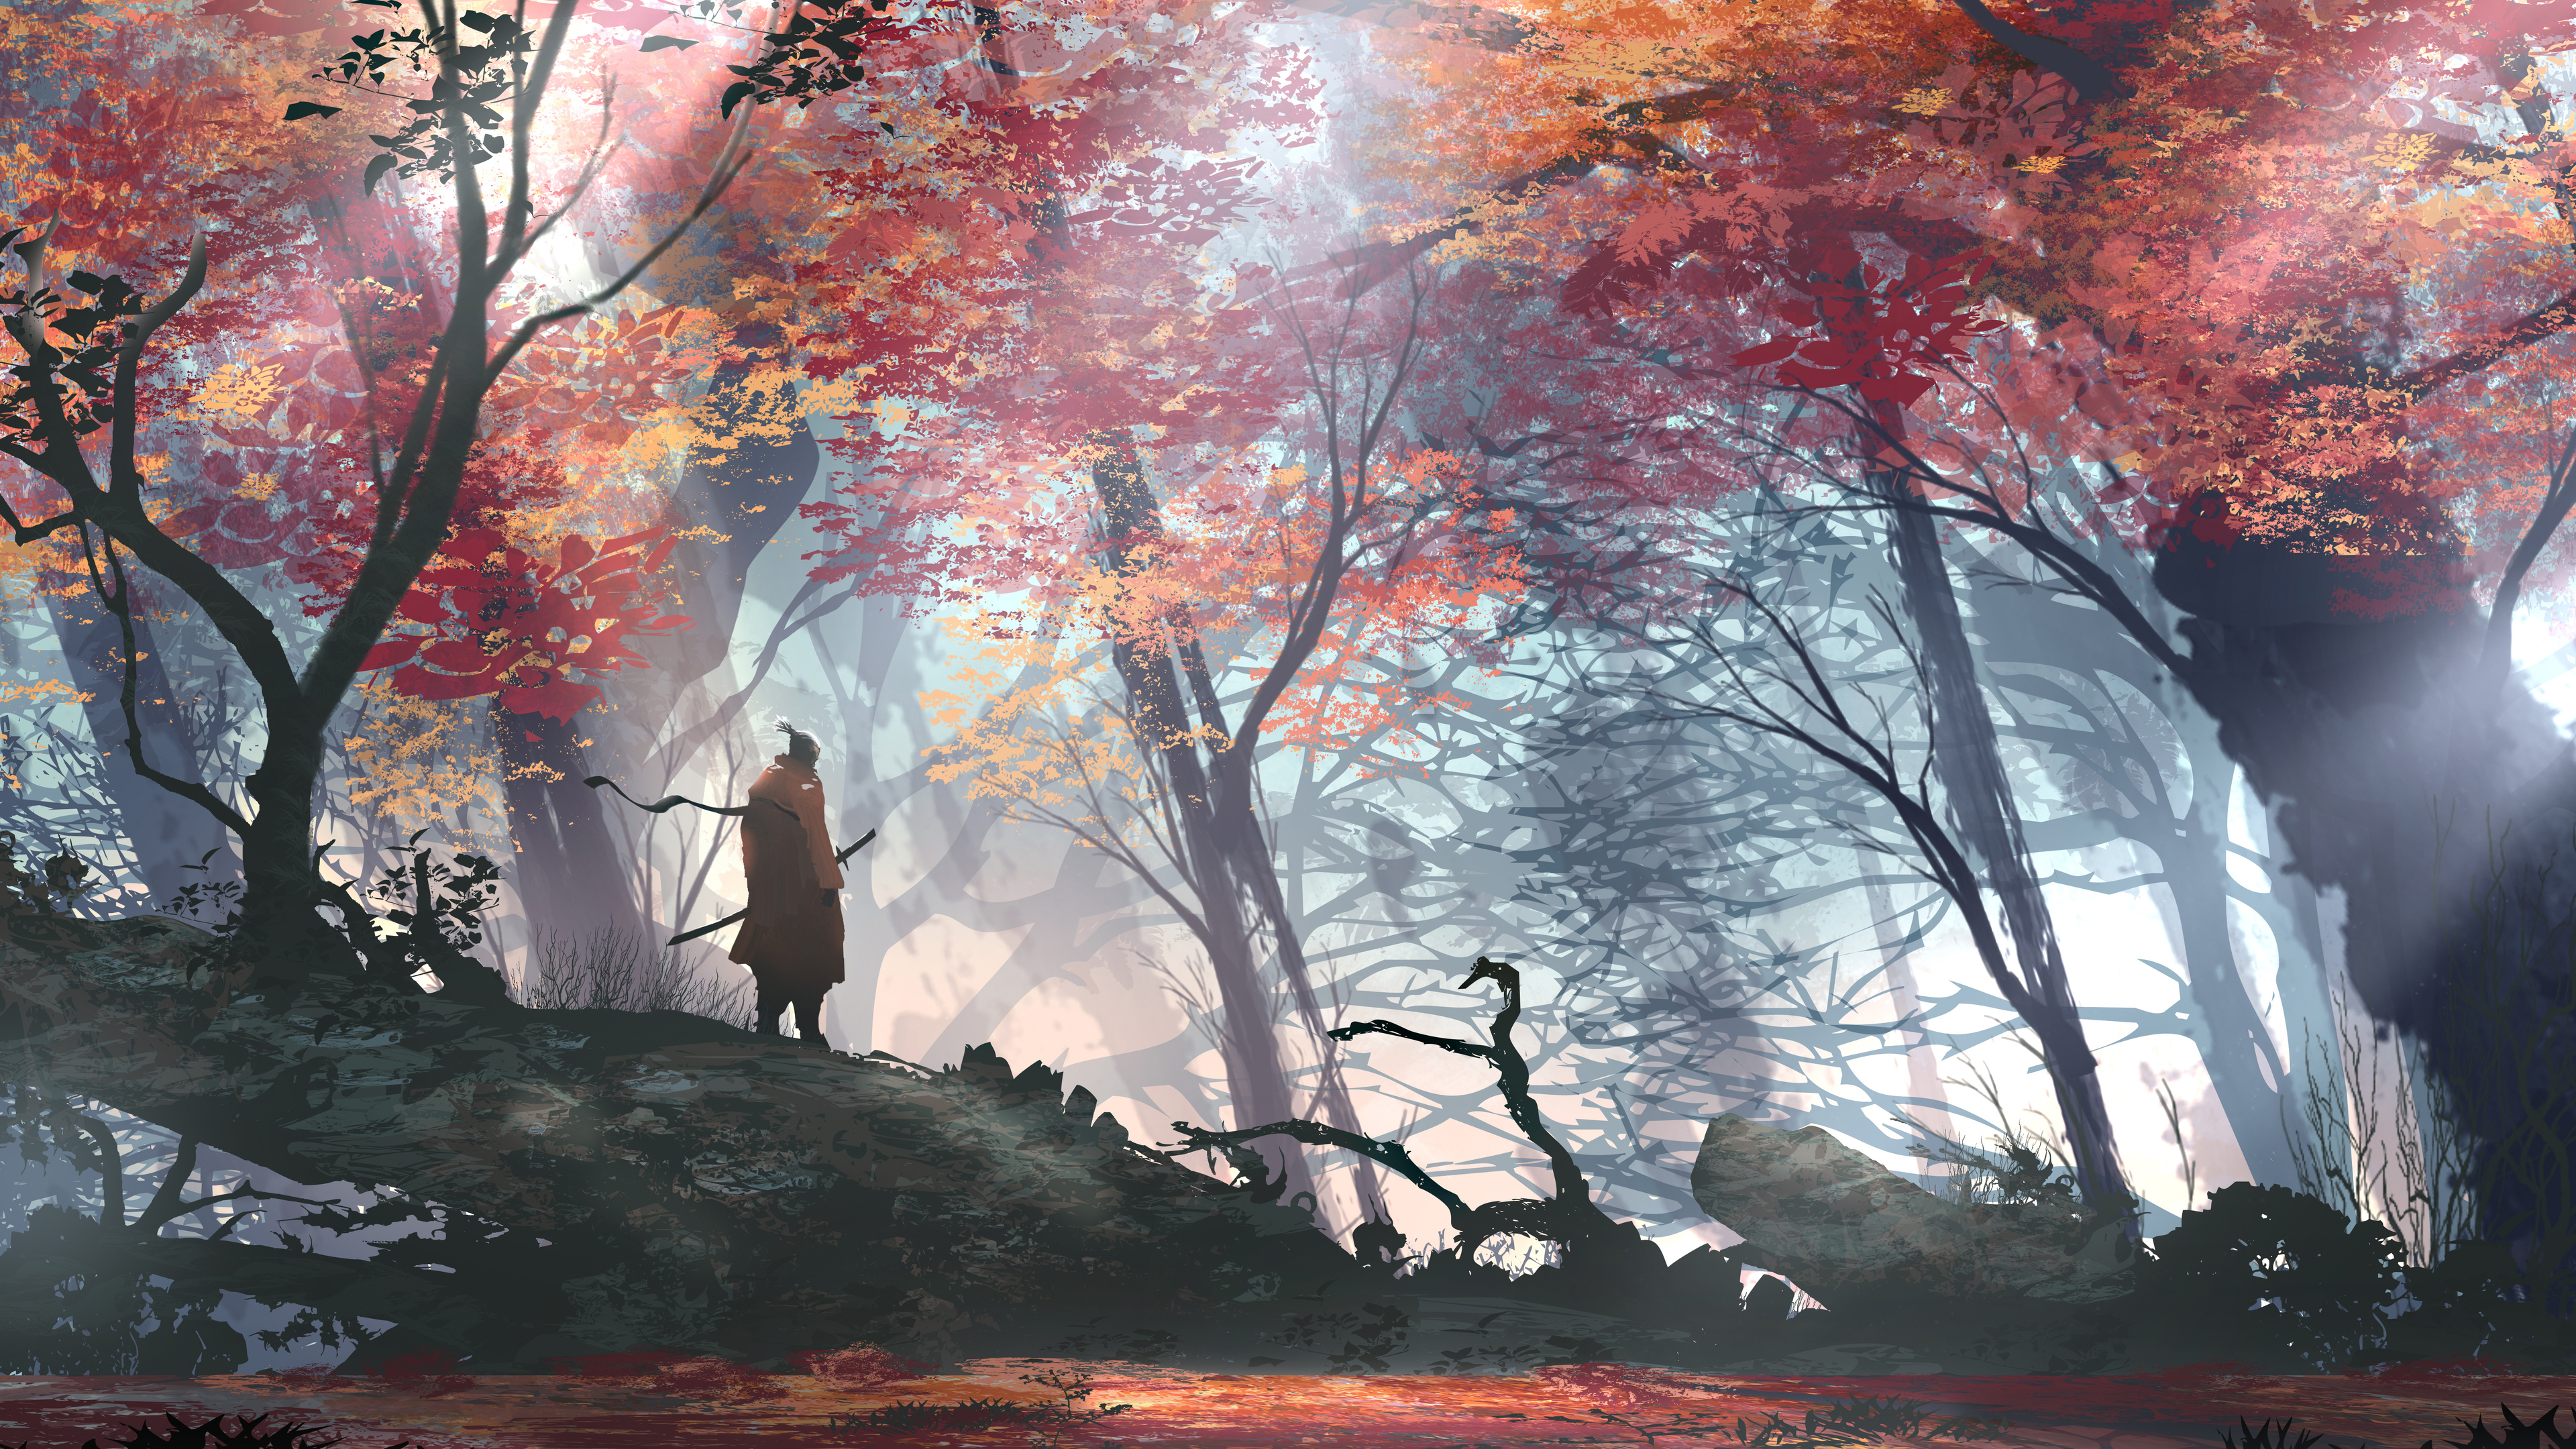 Top 11 Sekiro Shadows Die Twice Wallpapers In 4k And Full Hd